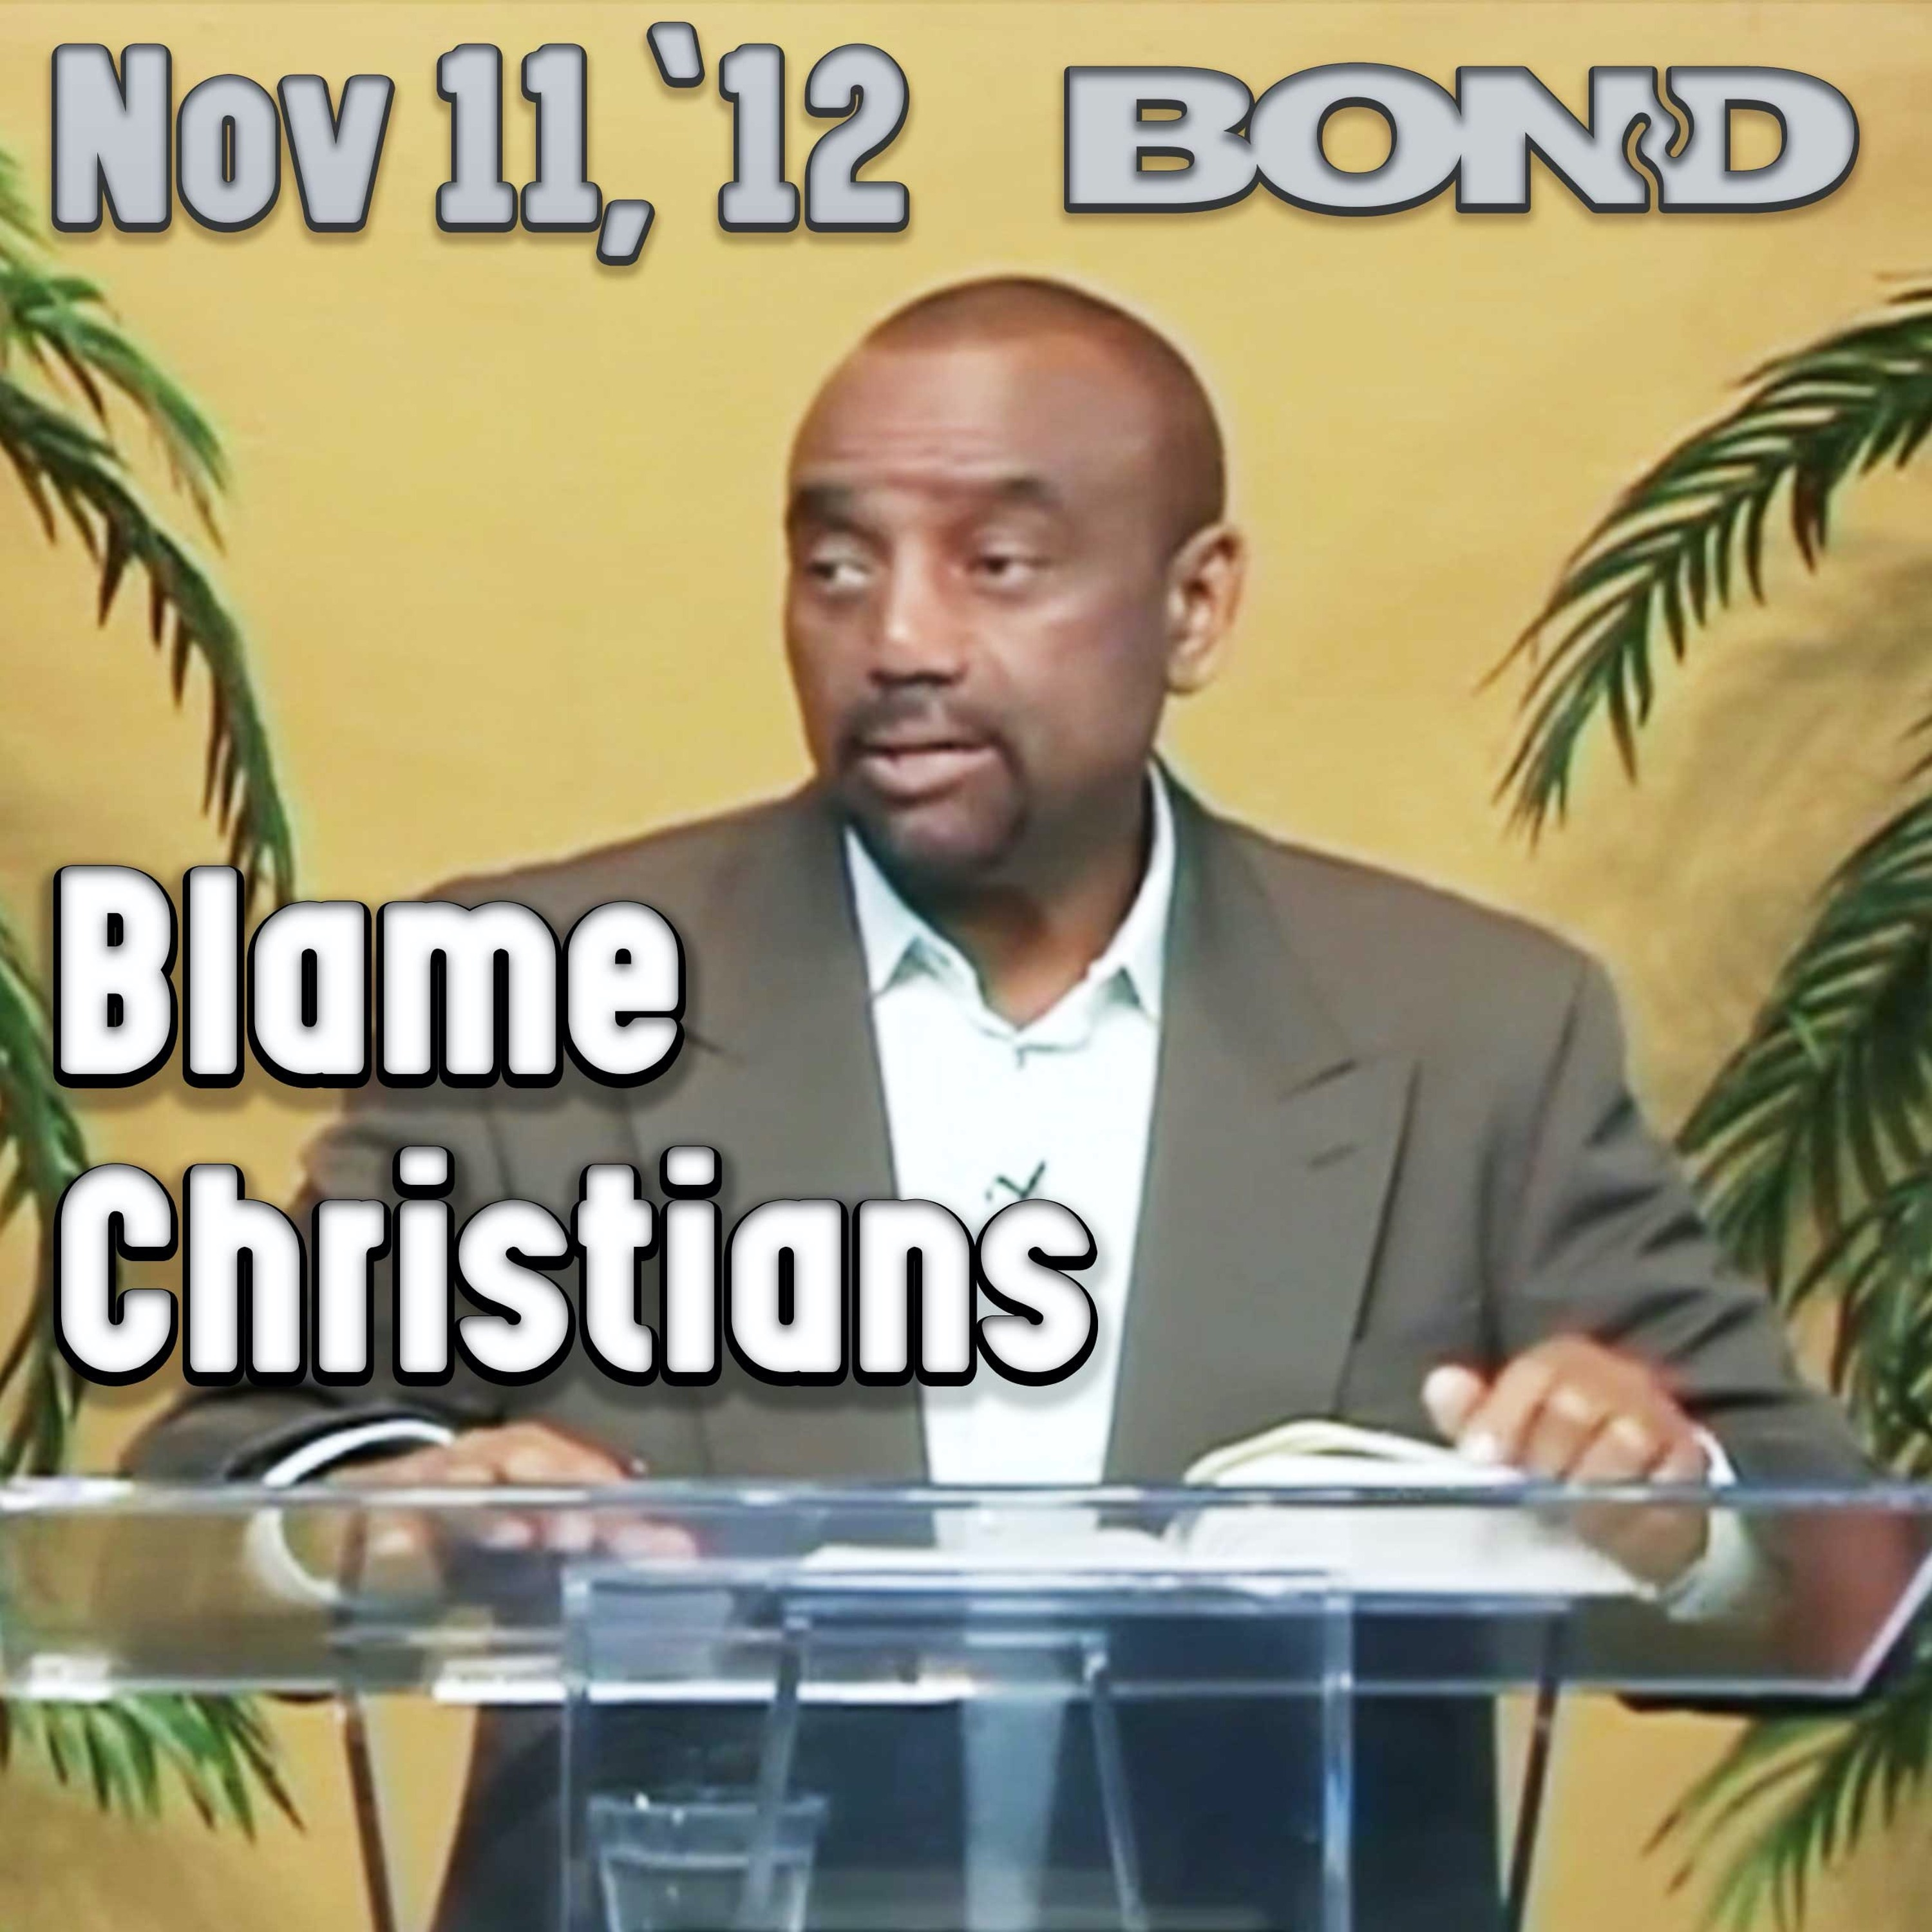 11/11/12 Understanding the Spirit Behind the Elections (Archive)